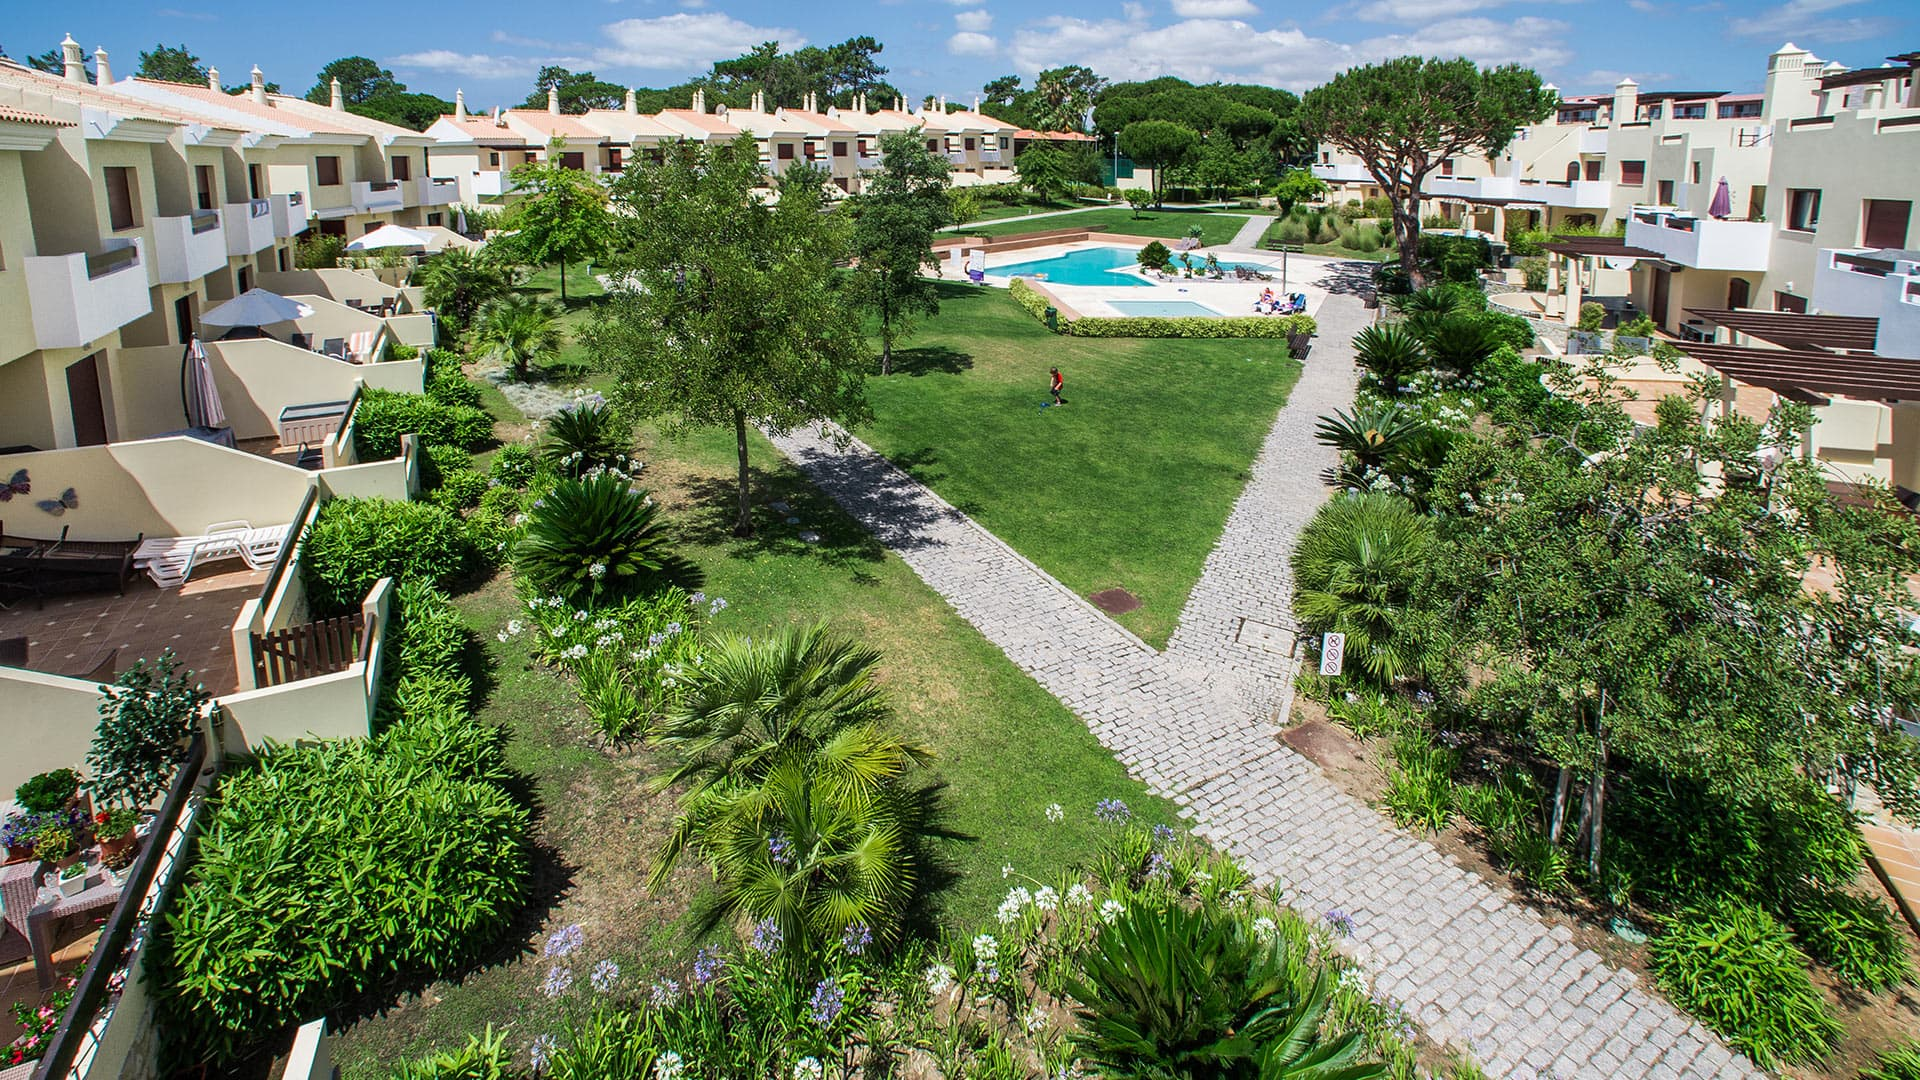 Villa Villa Kayla, Location à Algarve